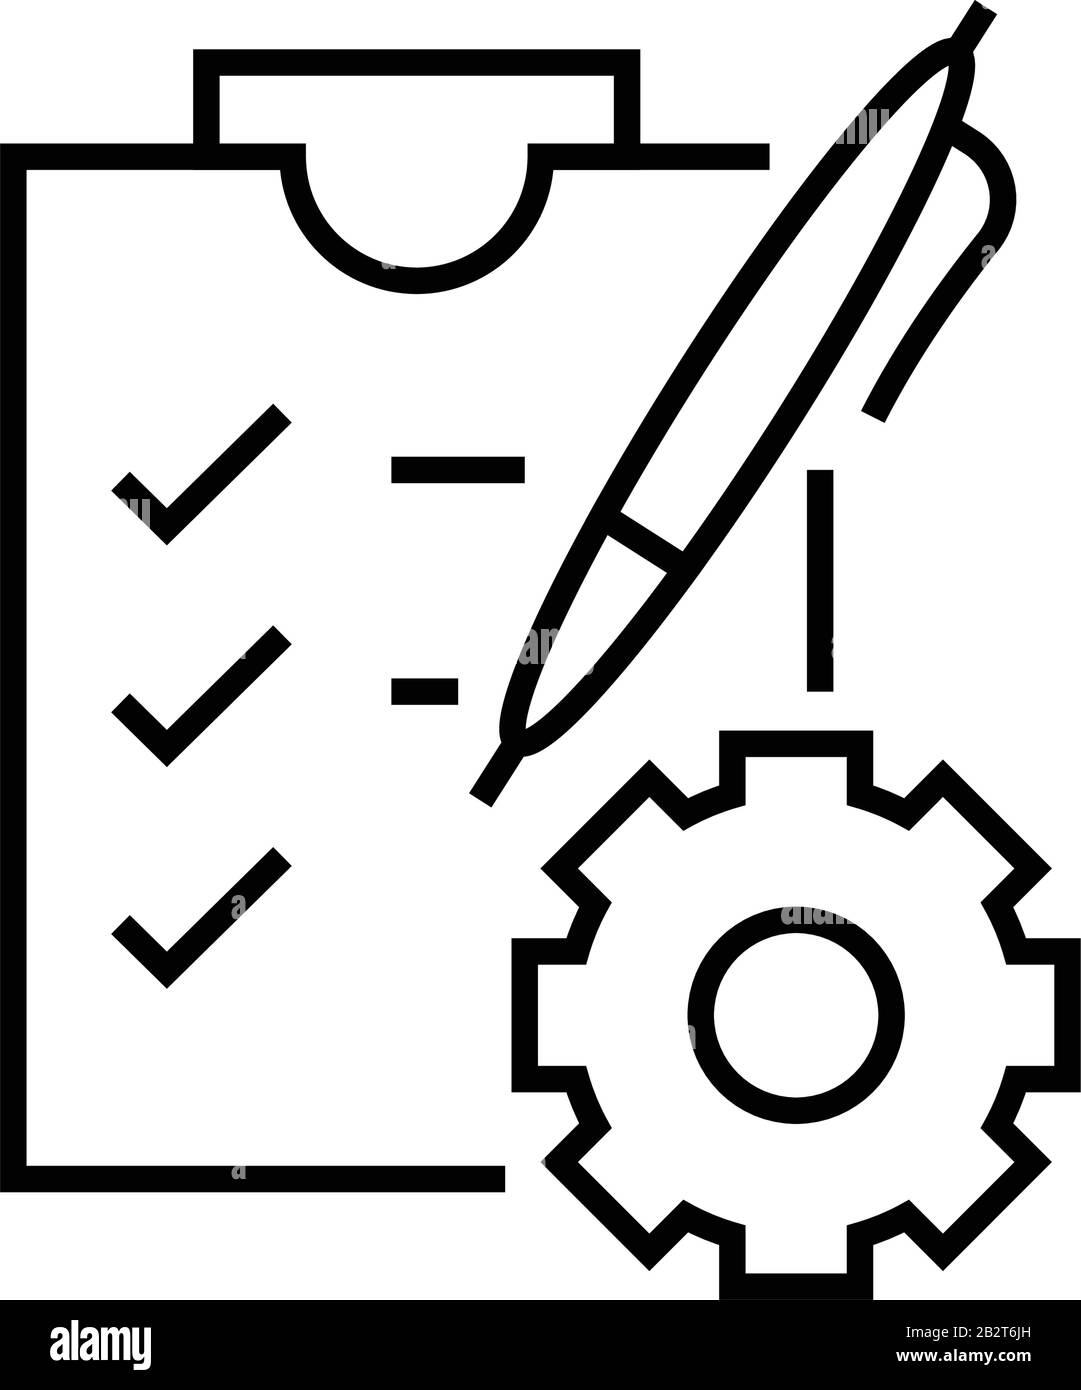 Technical Test Line Icon Concept Sign Outline Vector Illustration Linear Symbol Stock Vector Image Art Alamy Study 75 aac assessment flashcards from jessica r. https www alamy com technical test line icon concept sign outline vector illustration linear symbol image345968745 html